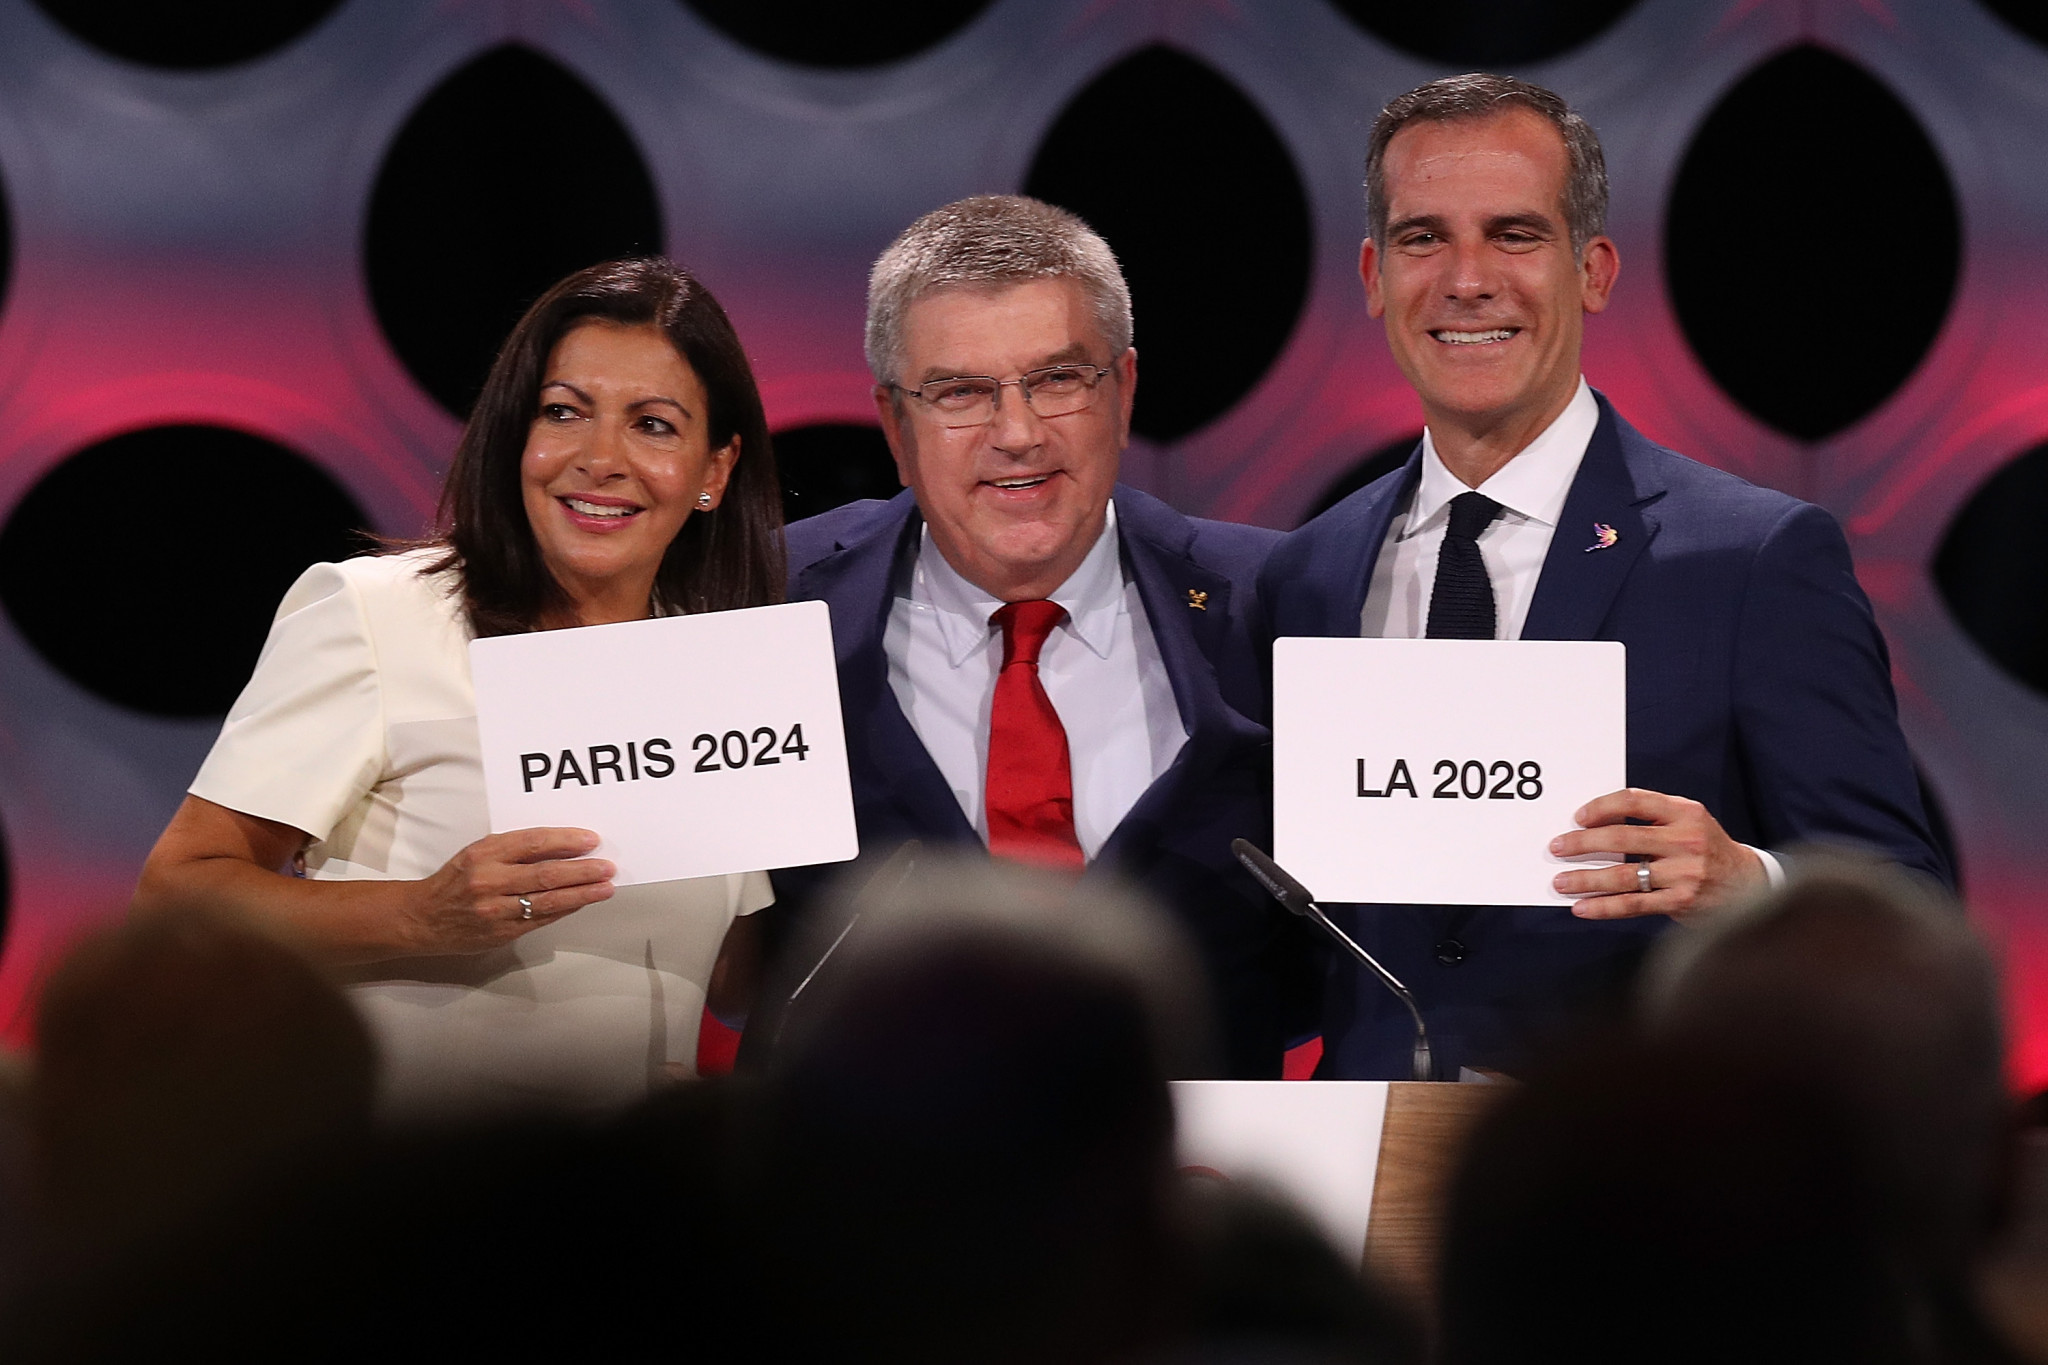 Paris 2024 and Los Angeles 2028 could work together on joint marketing agreements to maximise the impact of two Olympics having been awarded at the same time, offering companies a unique opportunity ©Getty Images